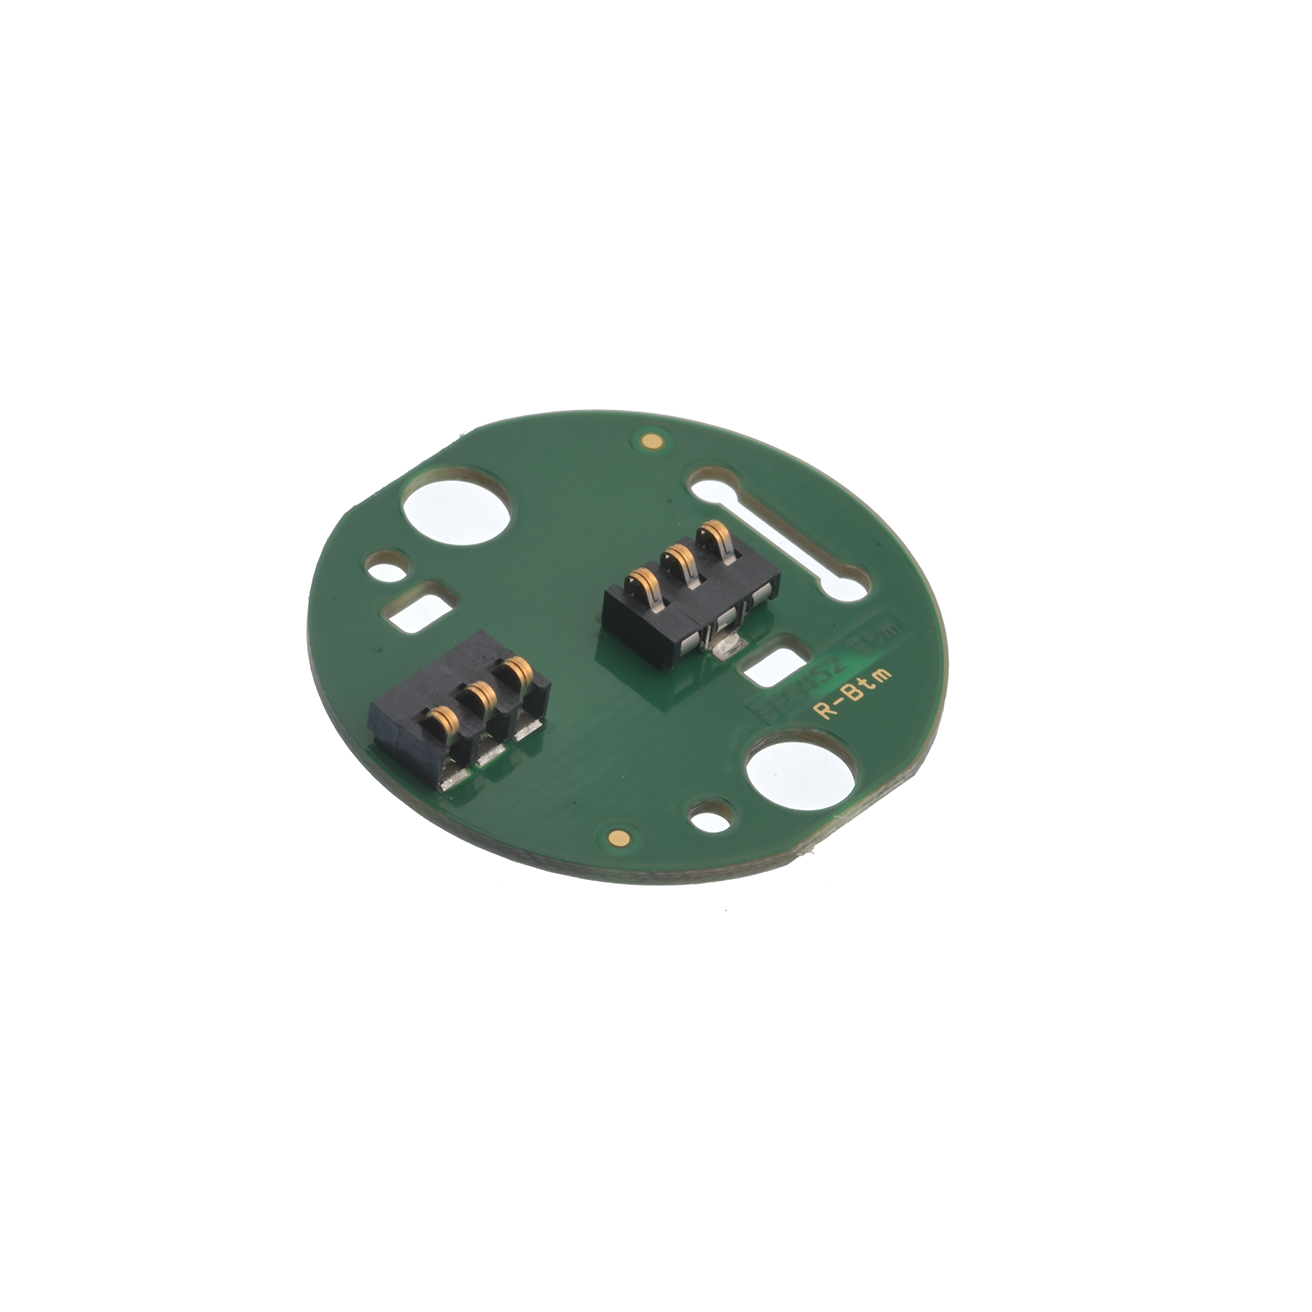 PCB microphone contact